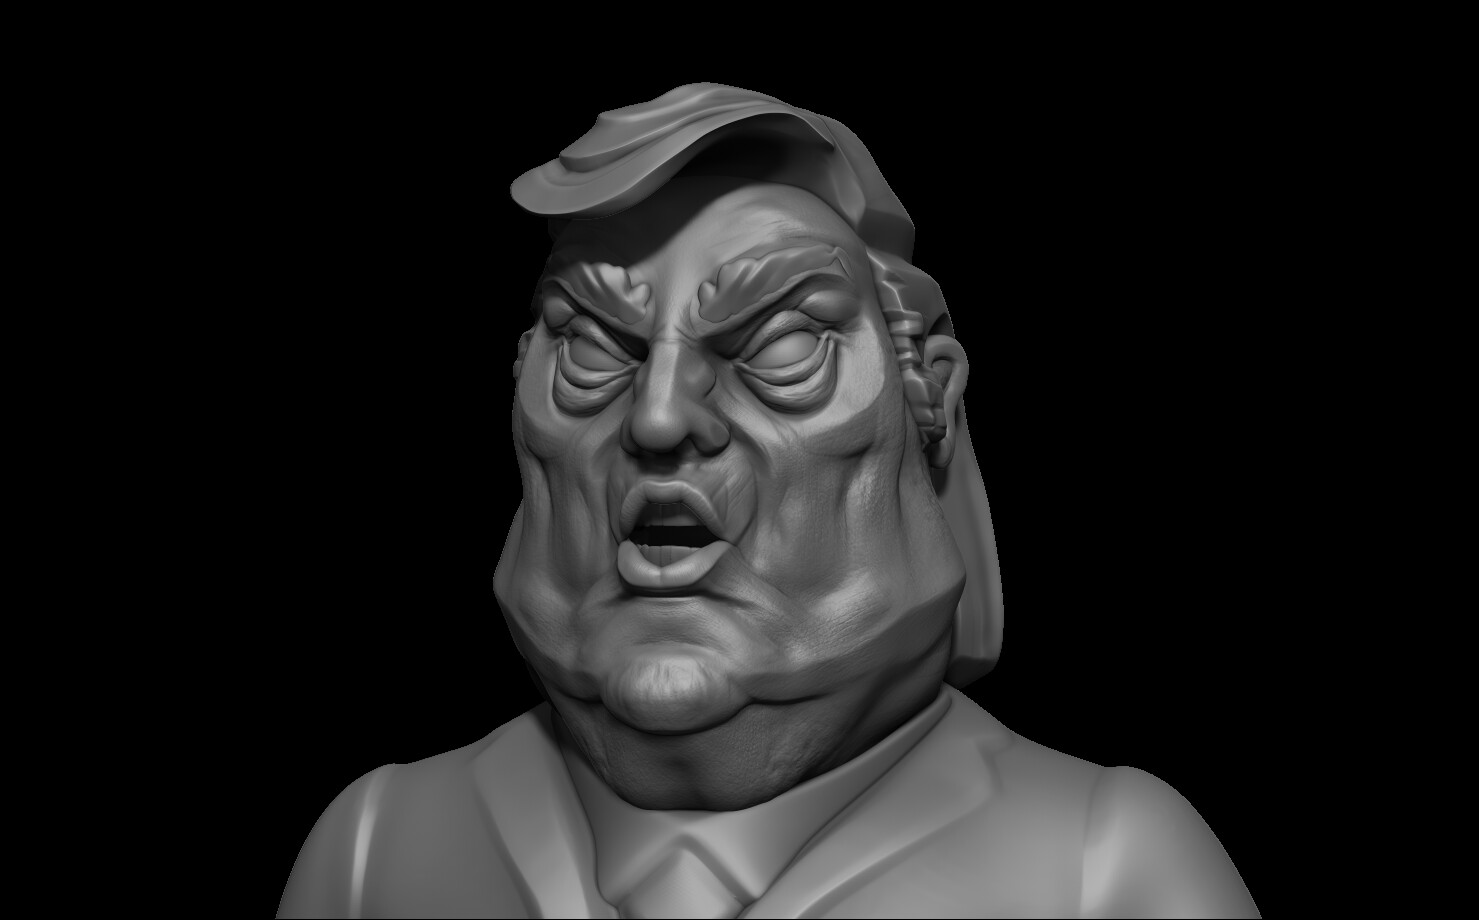 here's the high-poly version